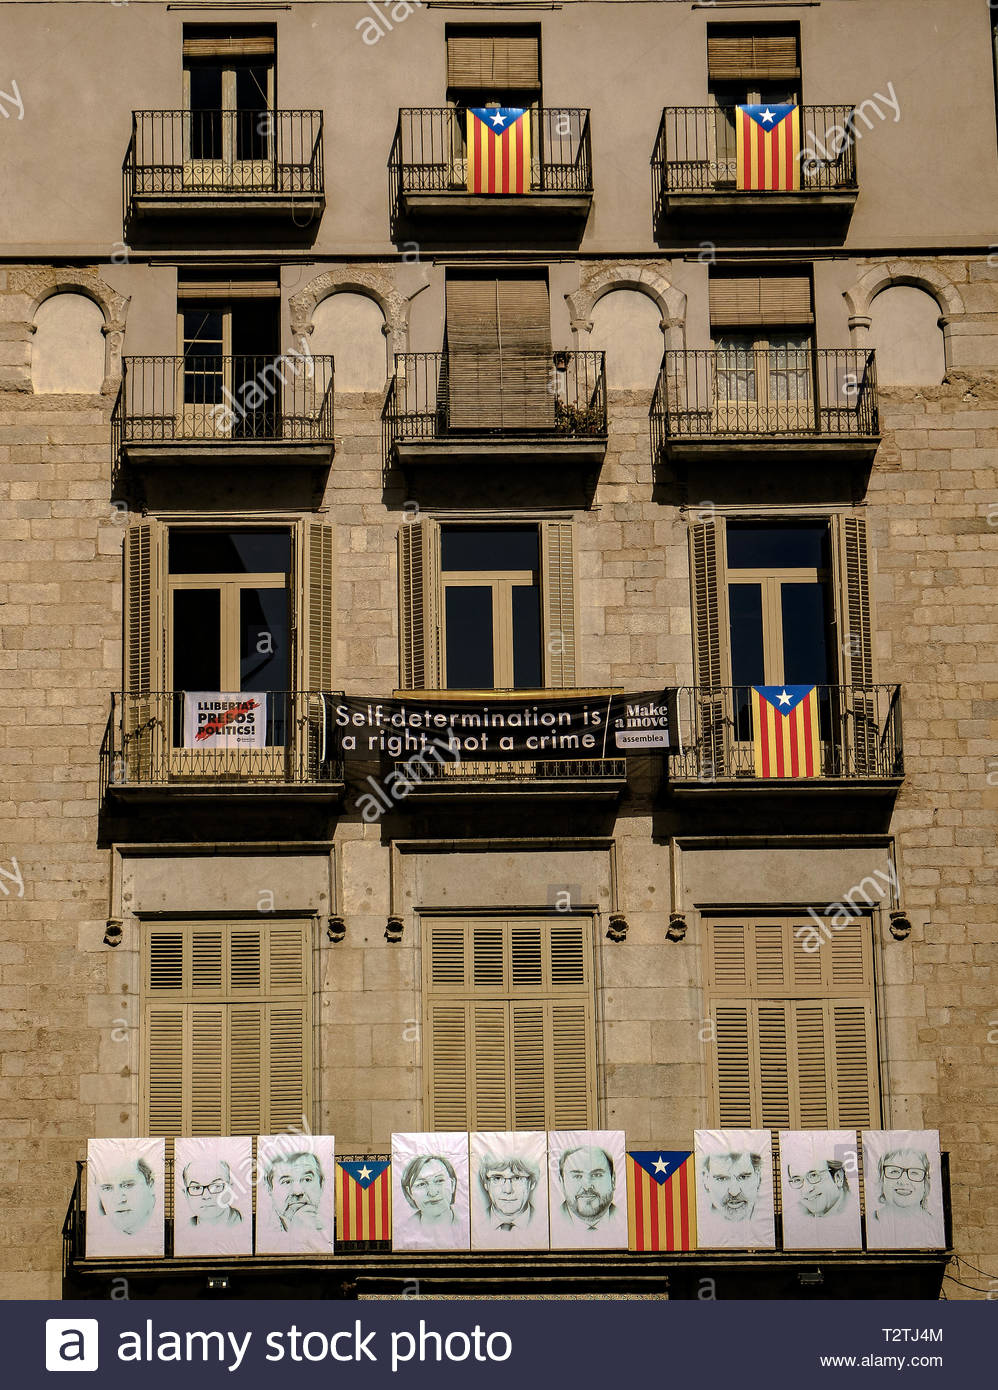 Building Façade with images of Catalan Government Officials imprisoned for voting for Independence from Spain March 2019 Stock Photo